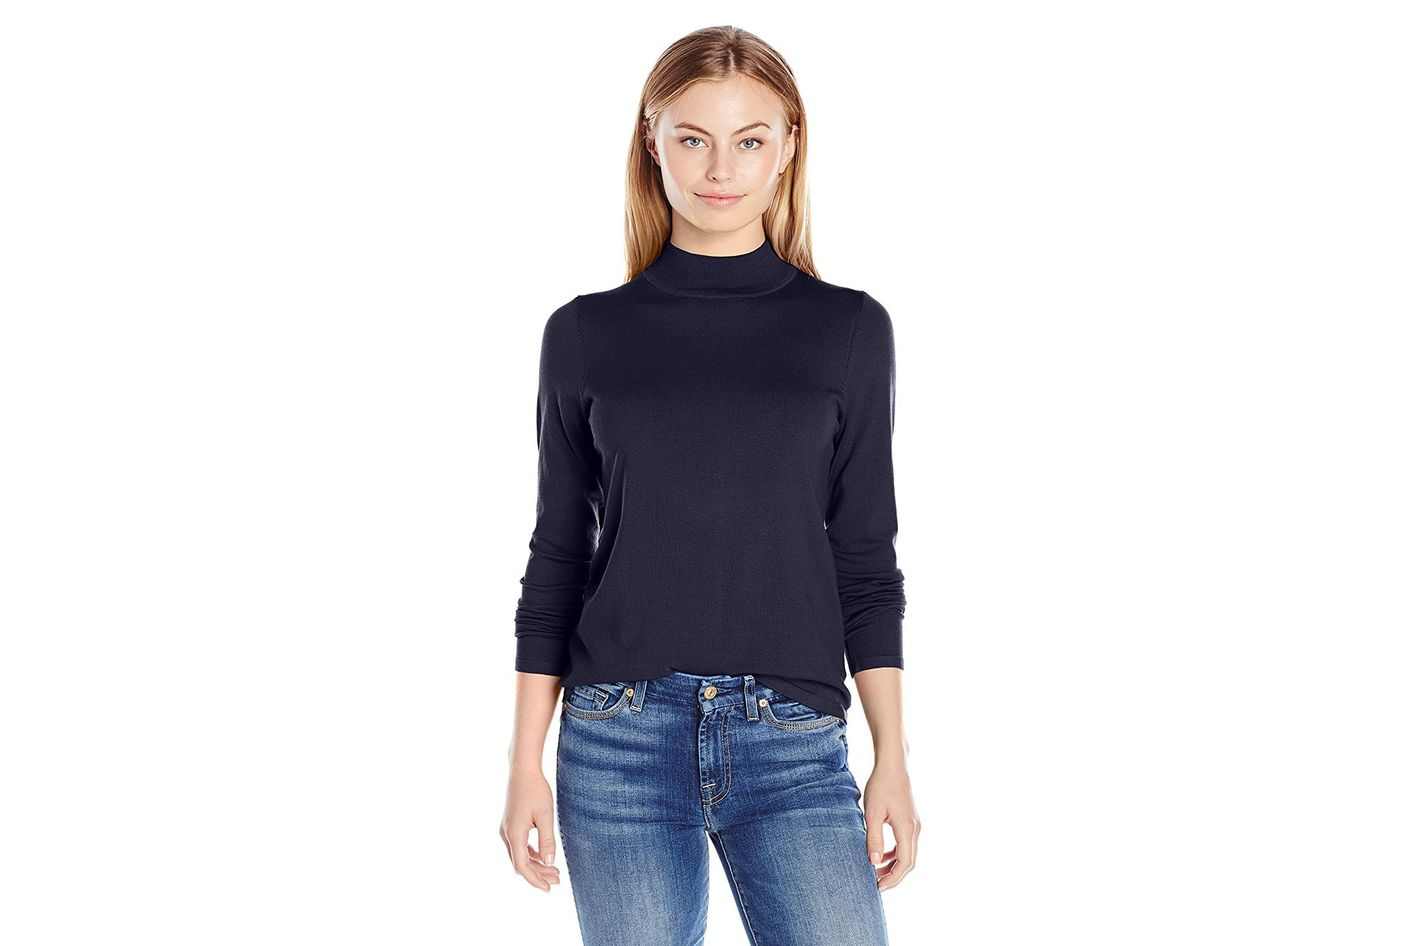 Pendleton Women's Washable Silk-Blend Mock Turtleneck Sweater